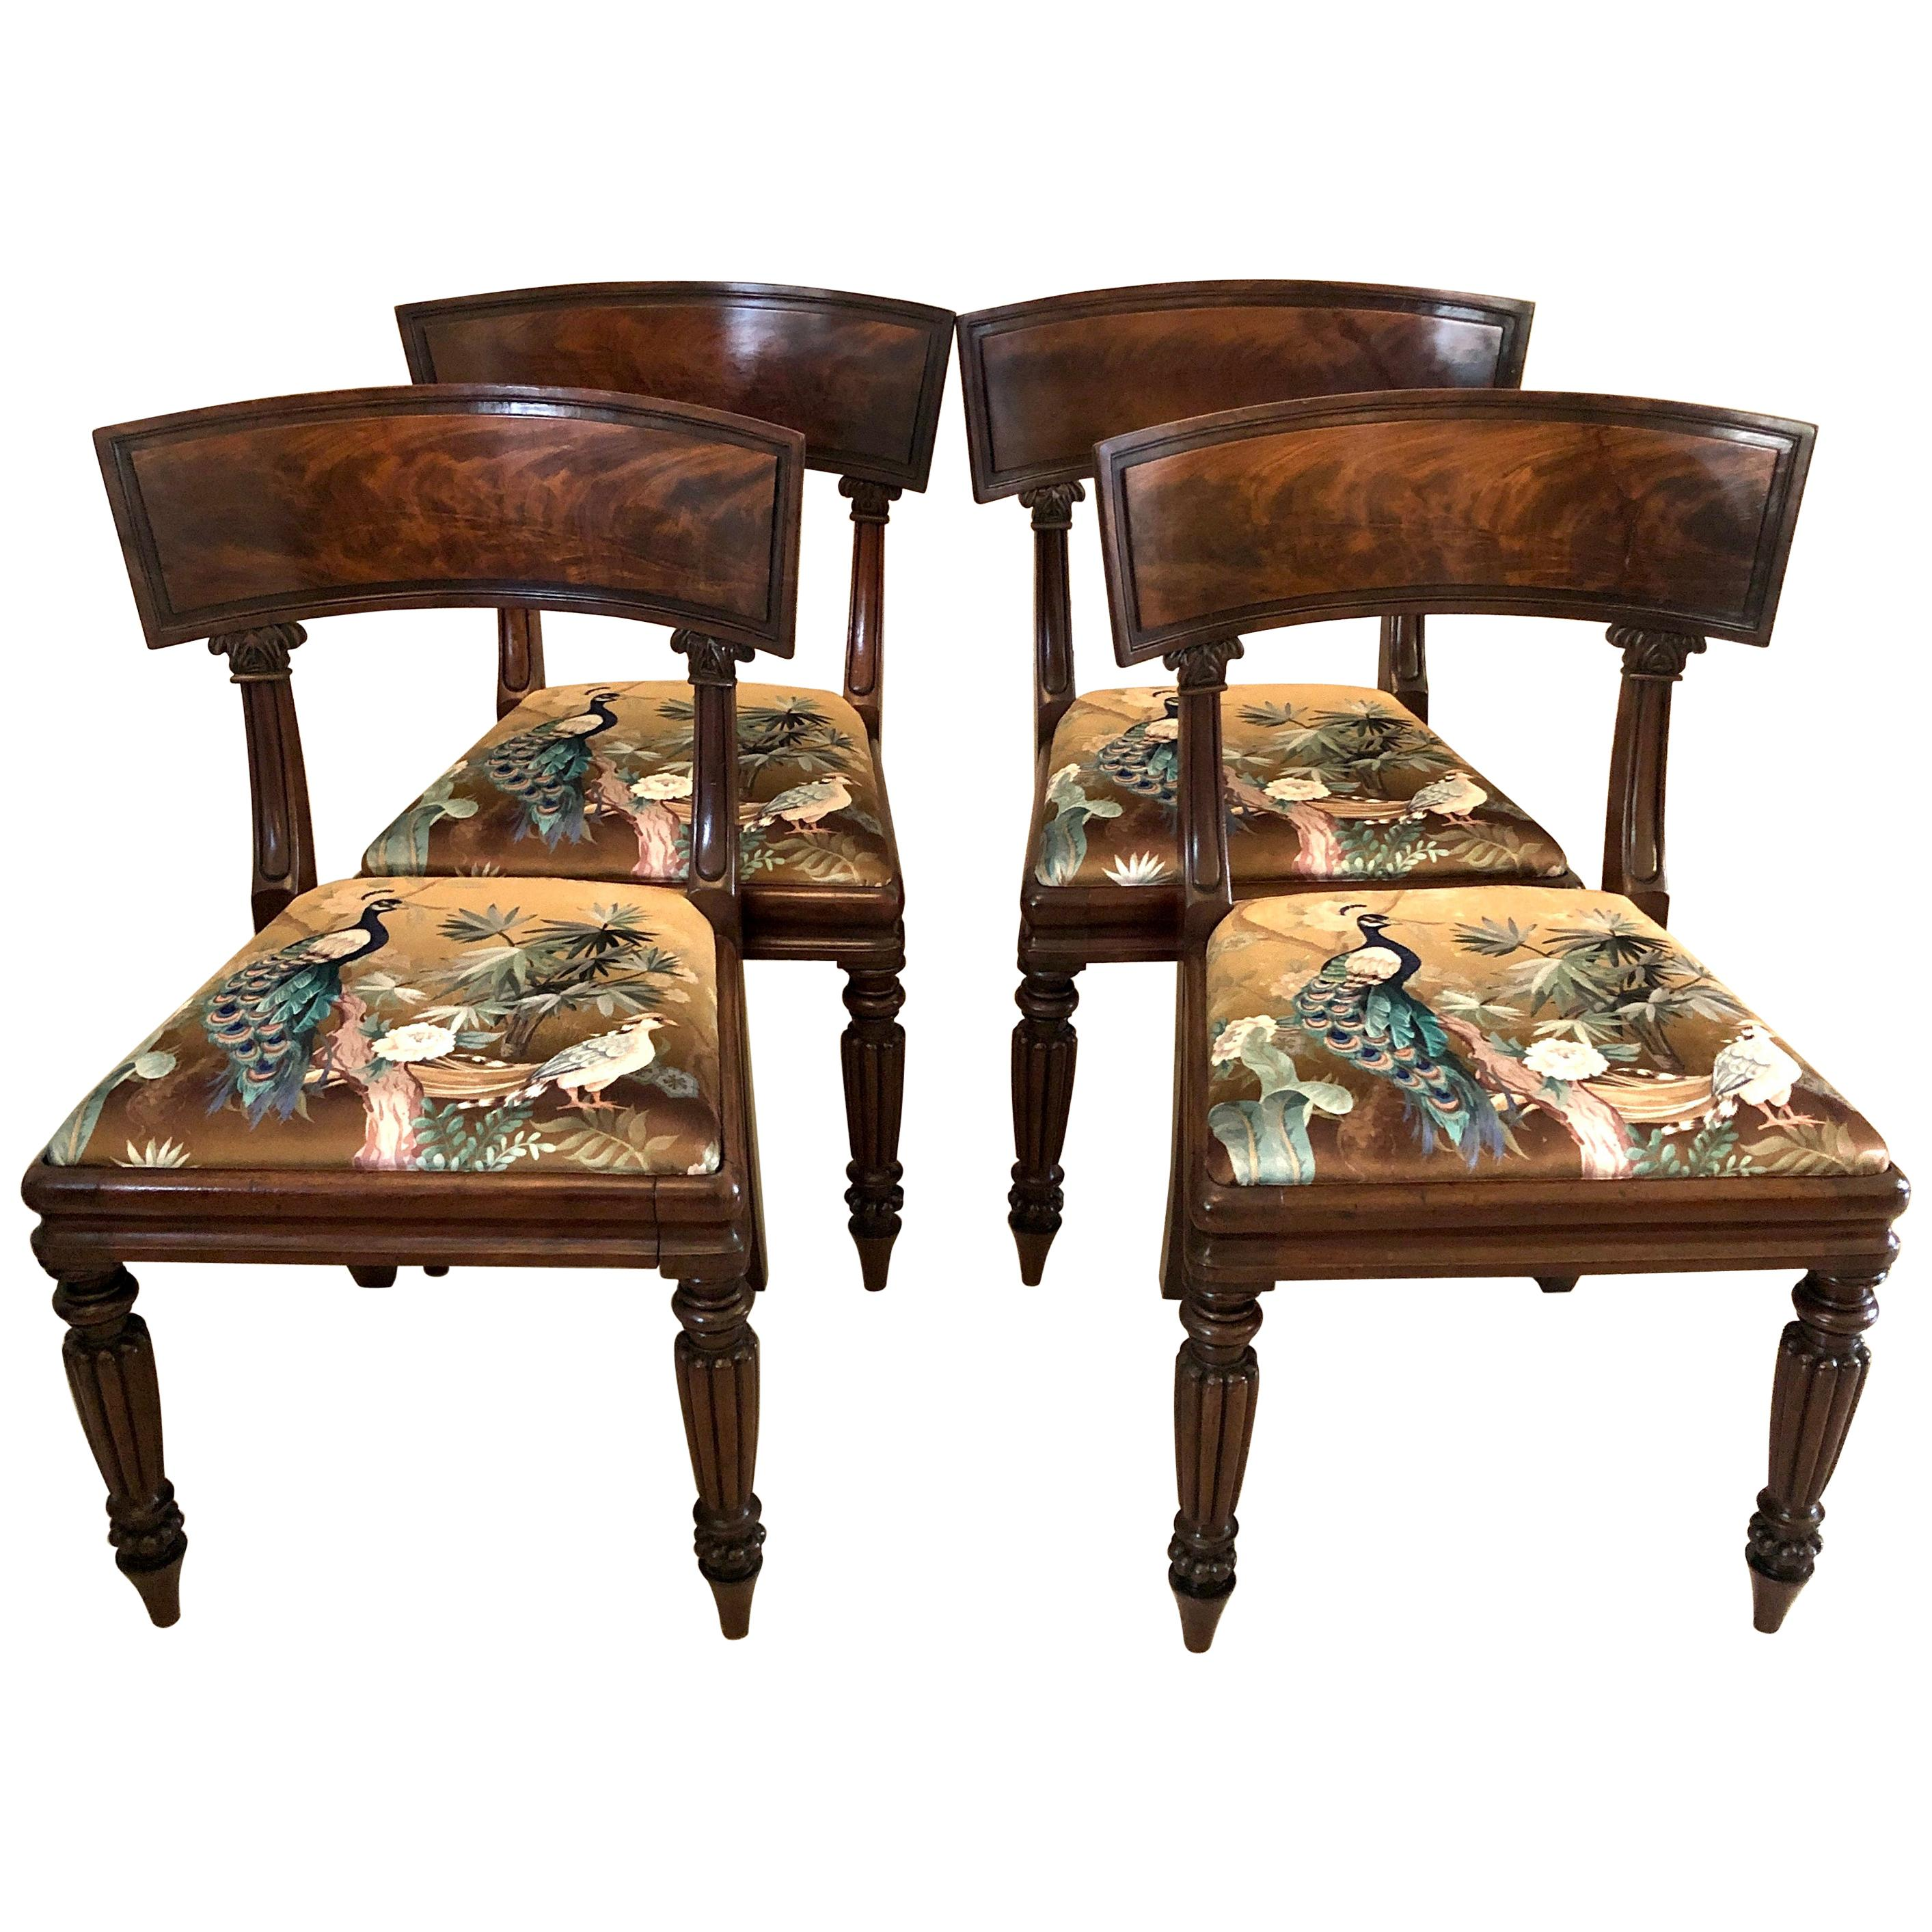 Antique Set of Four Early 19th Century Mahogany Regency Library Chairs